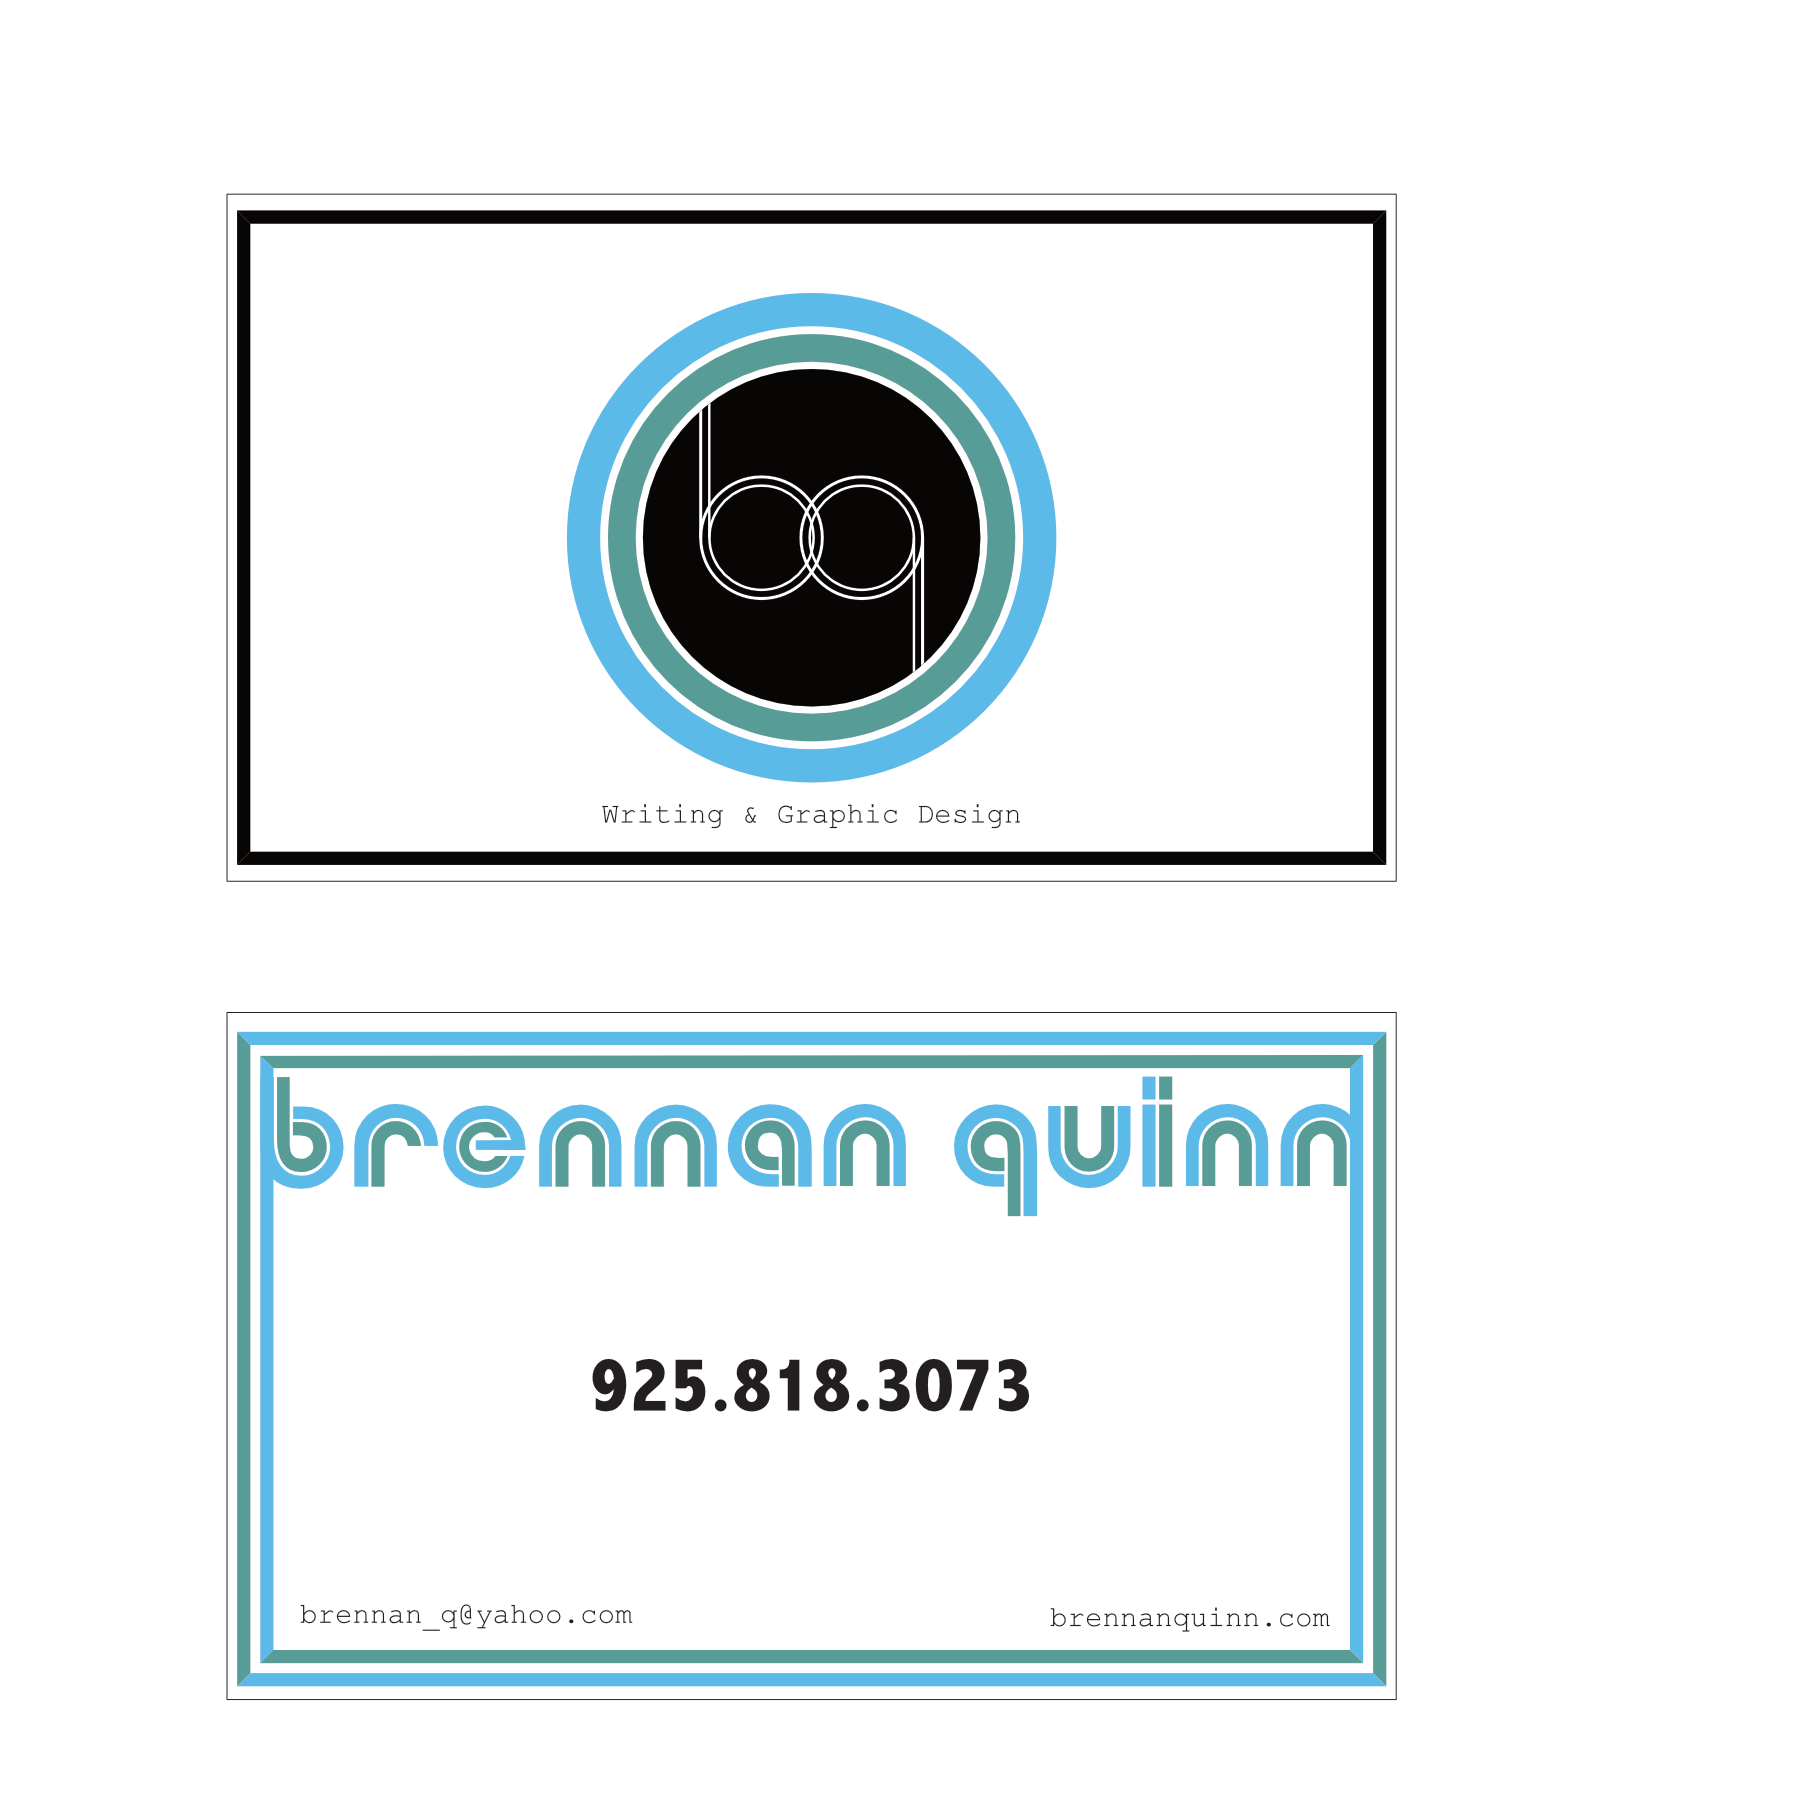 Check out this fun and funky design on this business card and logo check out this fun and funky design on this business card and logo by brennan quinn colourmoves